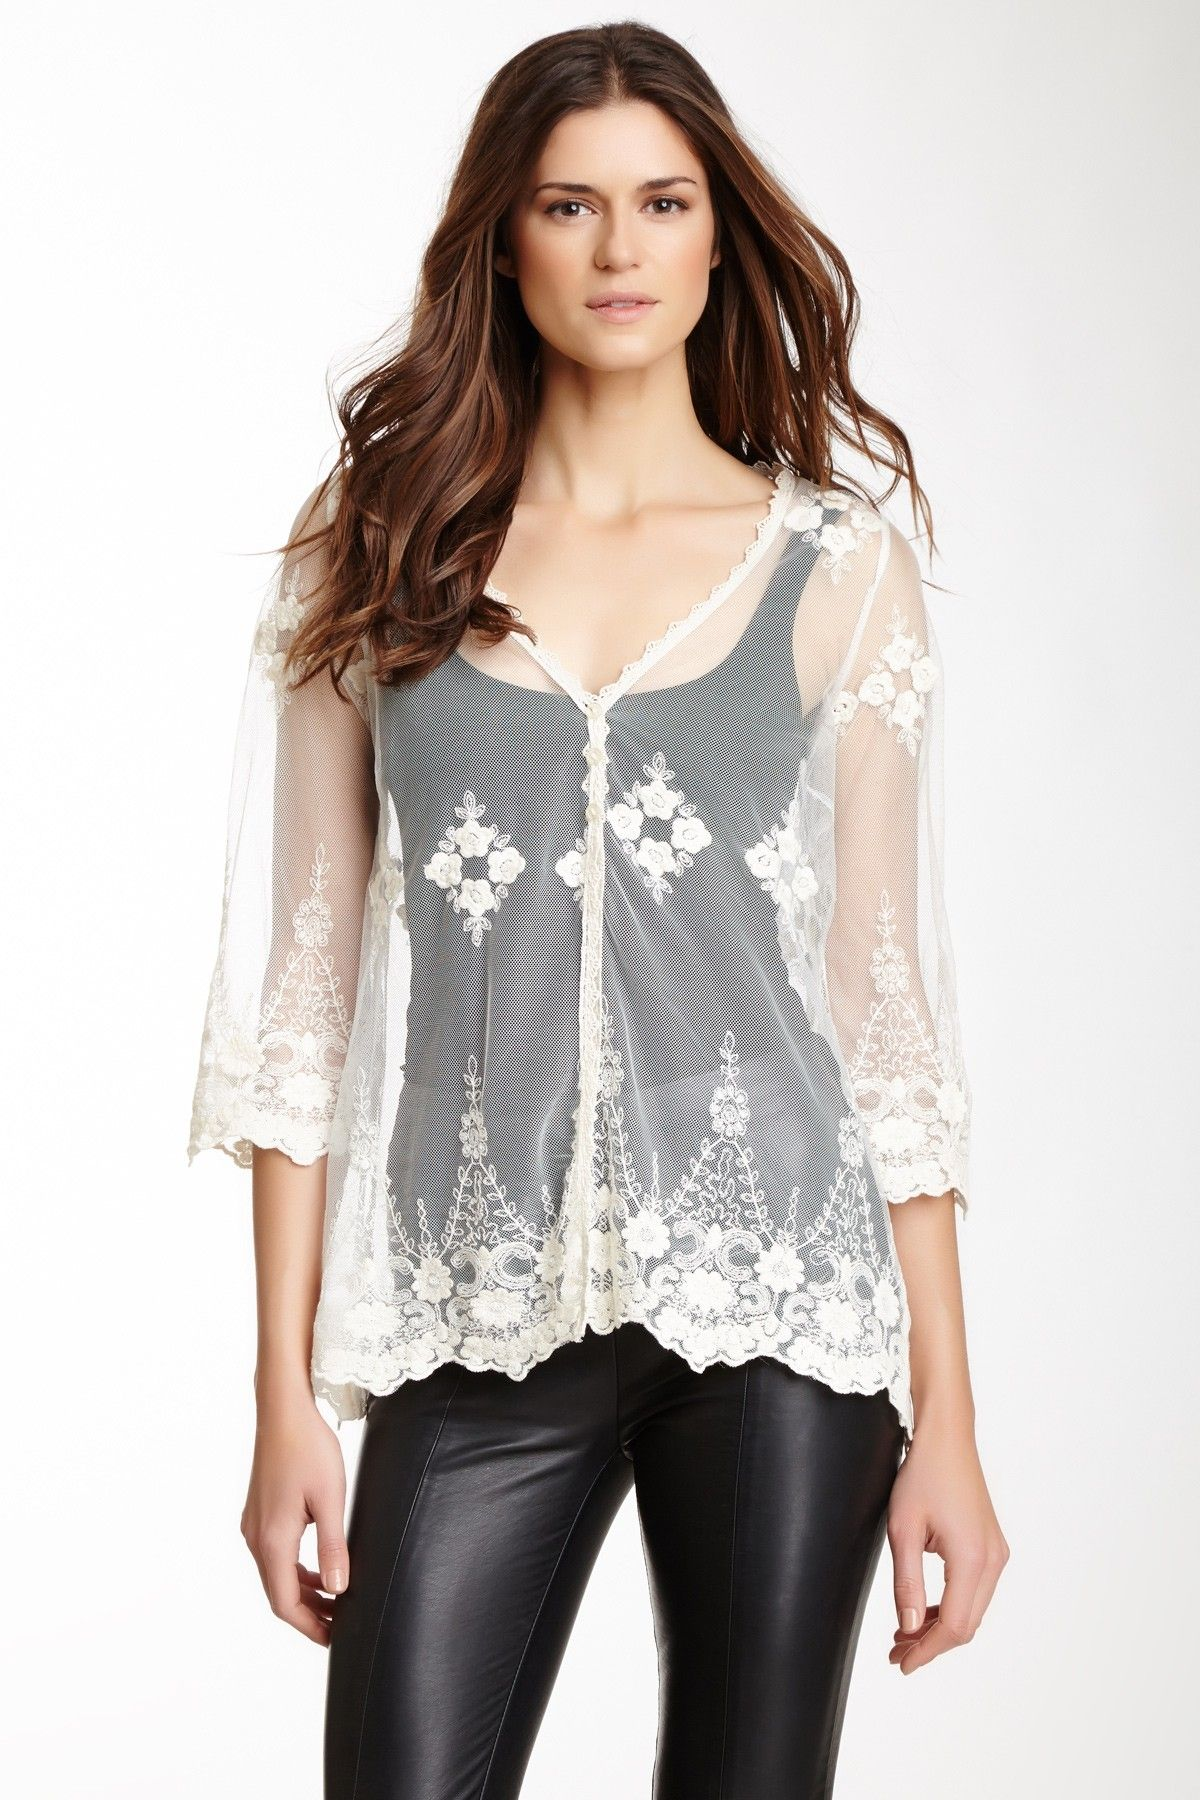 Sheer Lace Cardigan...cause I'm going through a lace craze ...